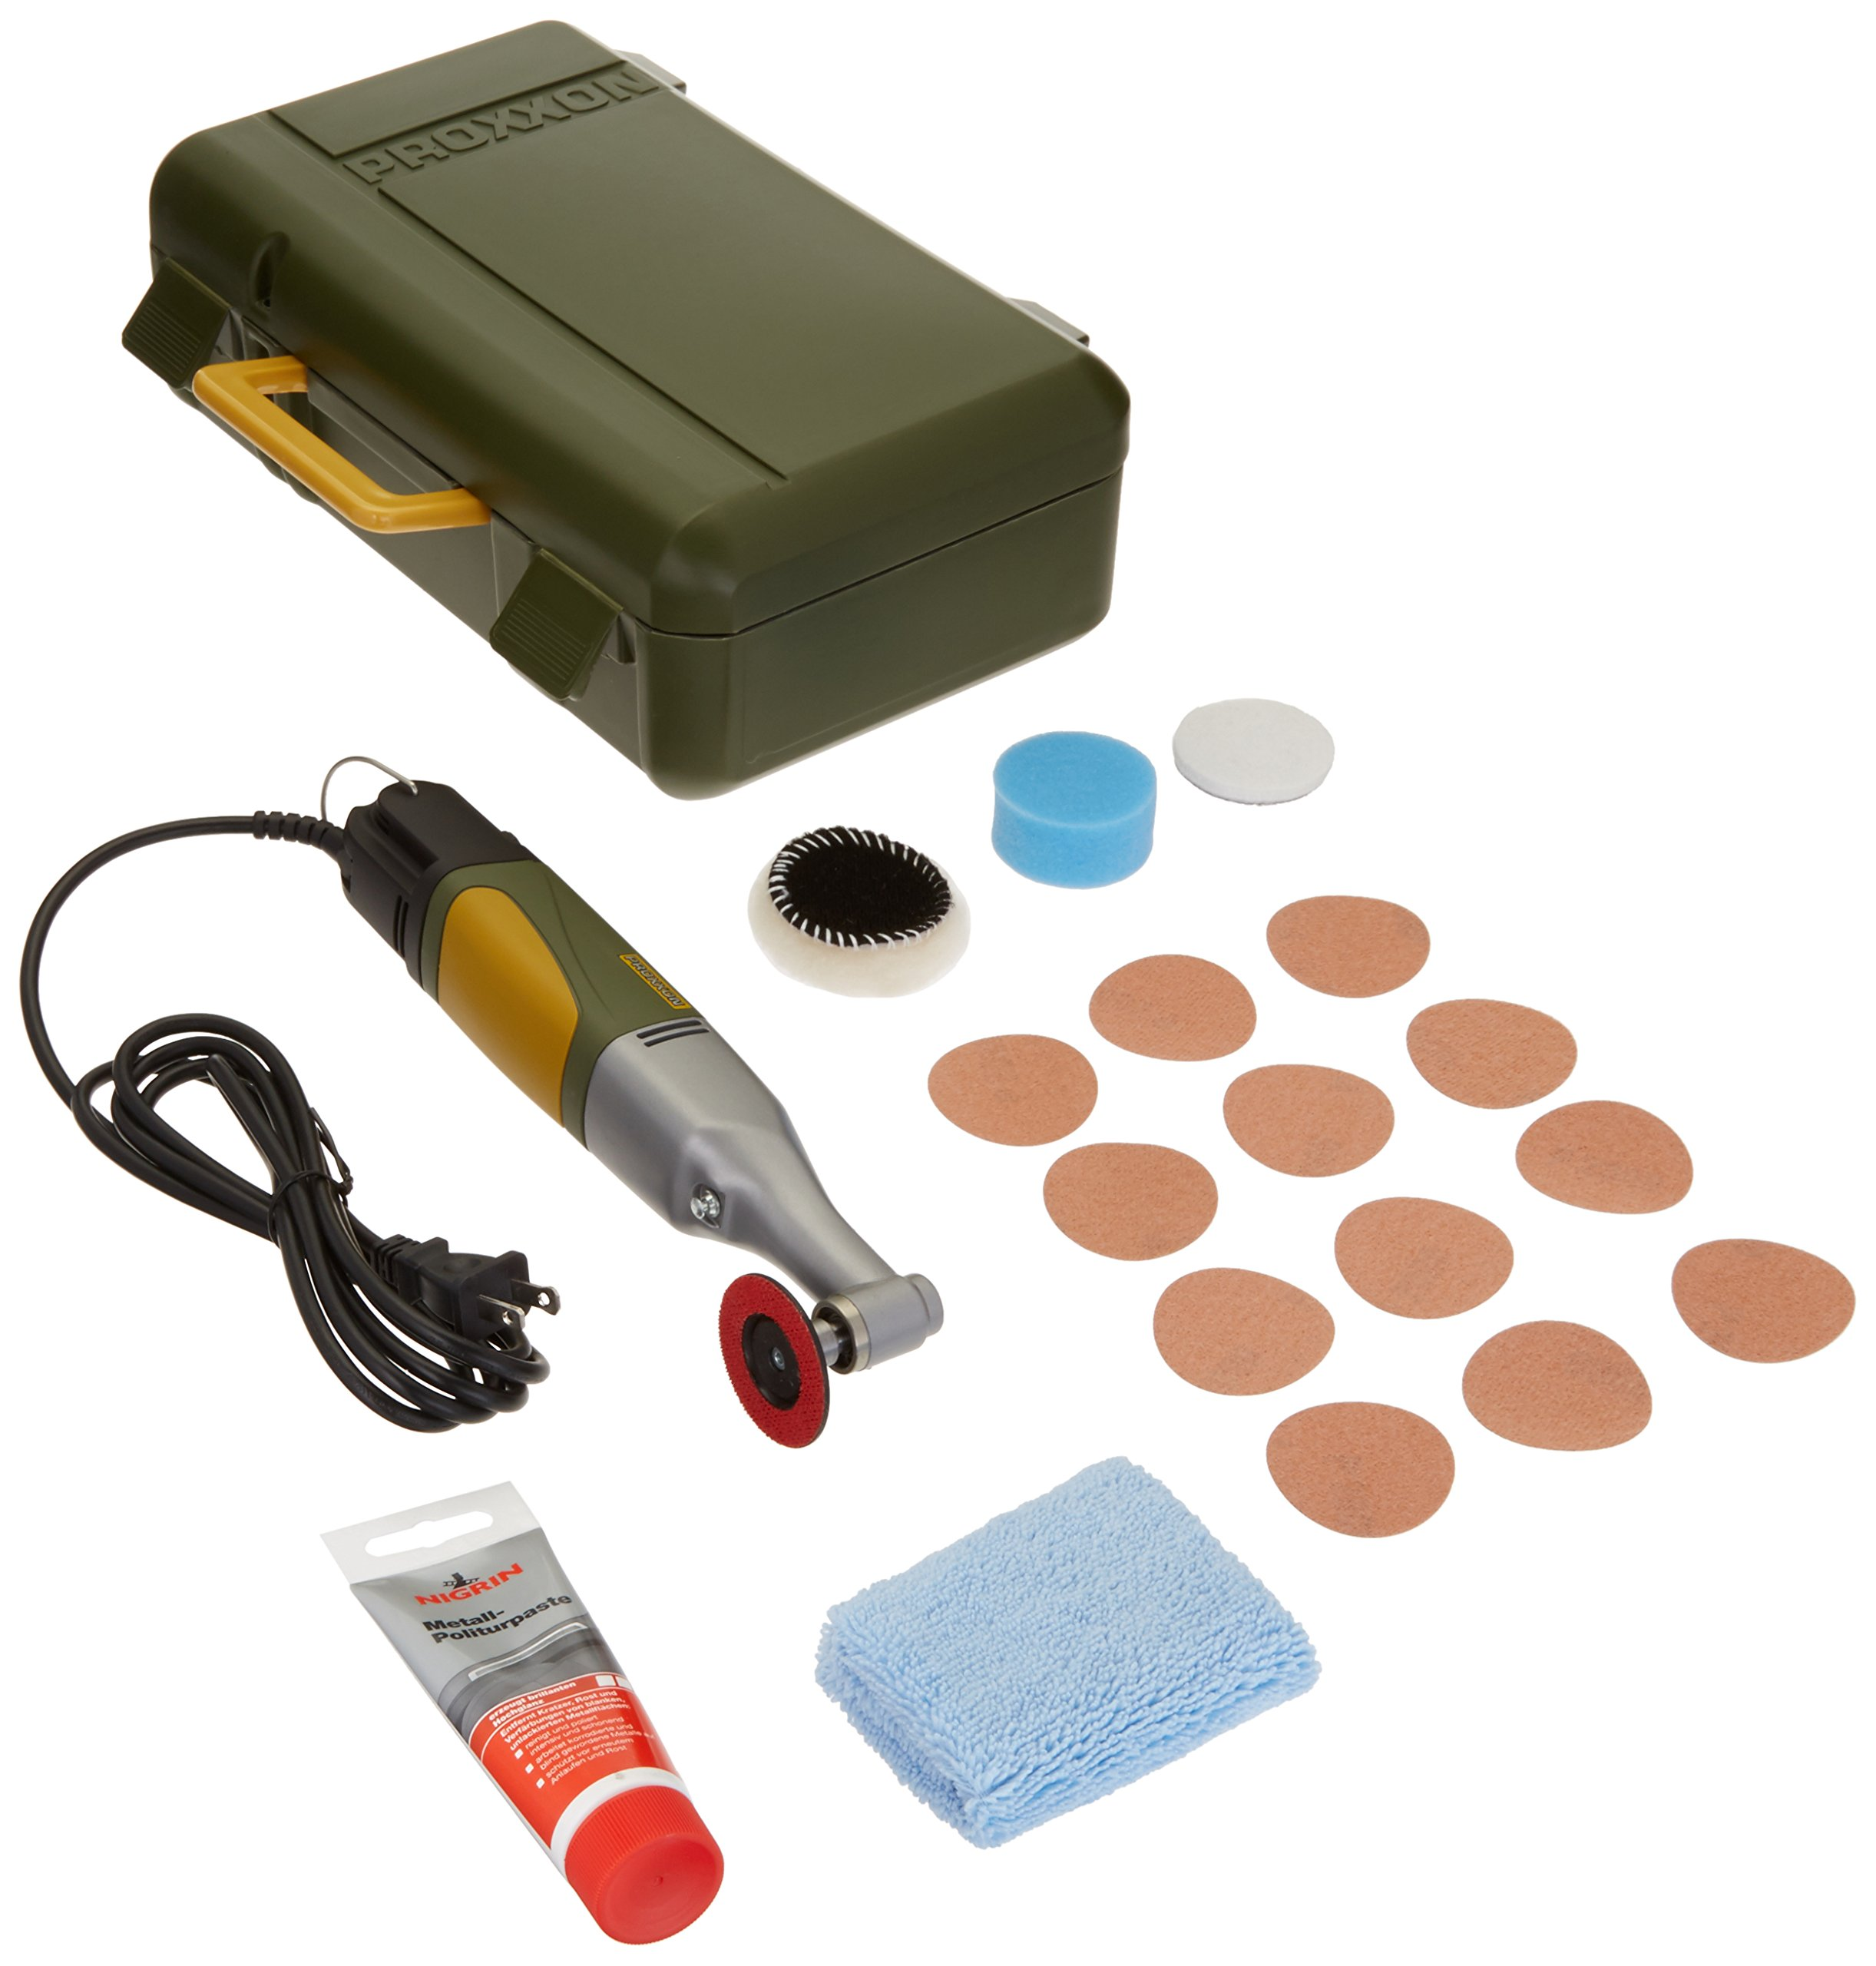 Proxxon 38660 Angle Polisher, Yellow/Green/Black by Proxxon (Image #1)